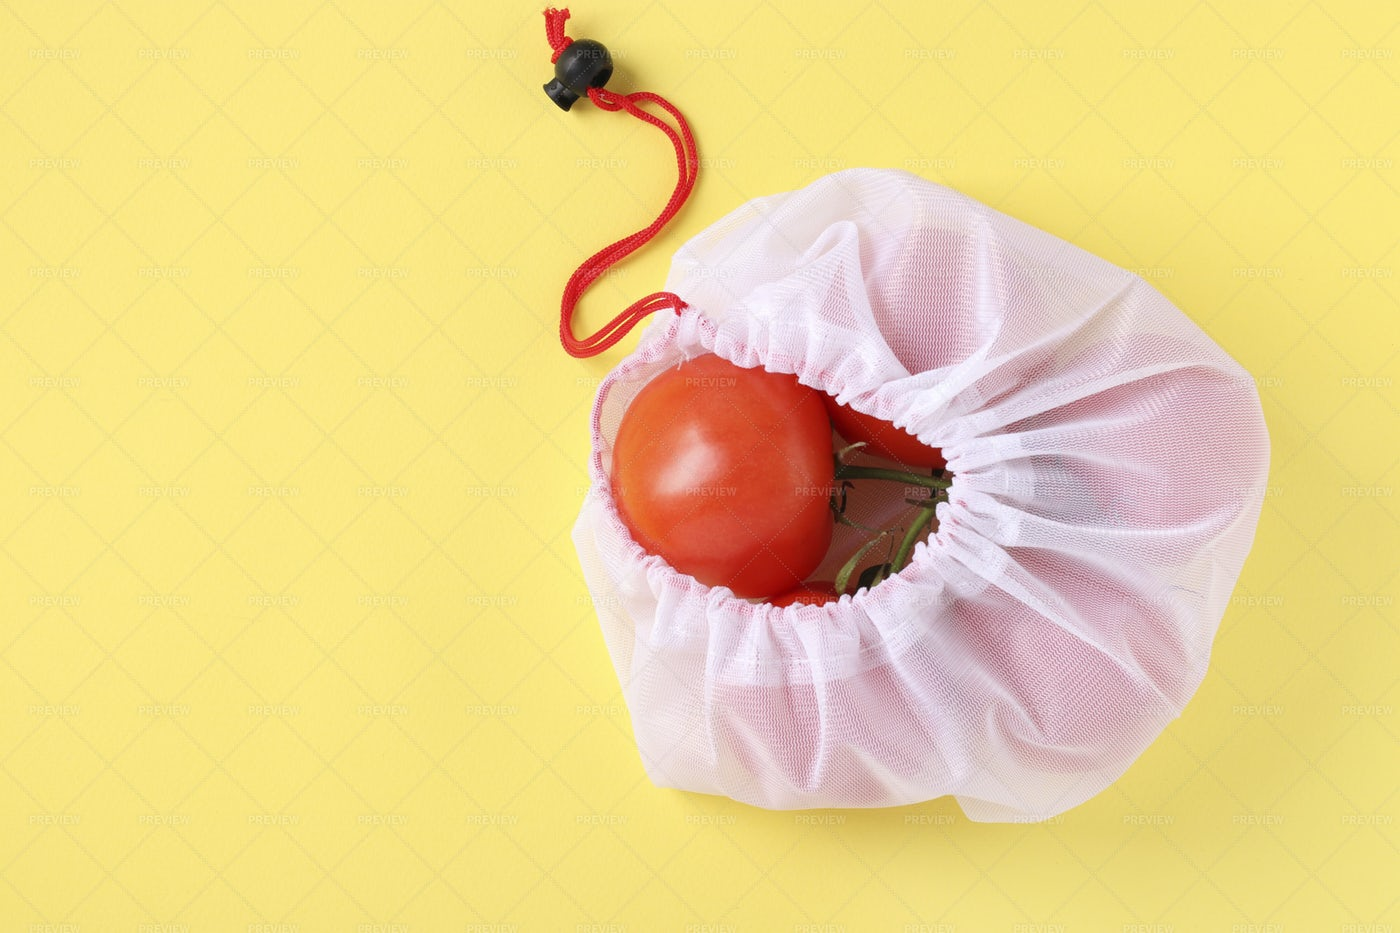 Tomatoes In Mesh Bag: Stock Photos